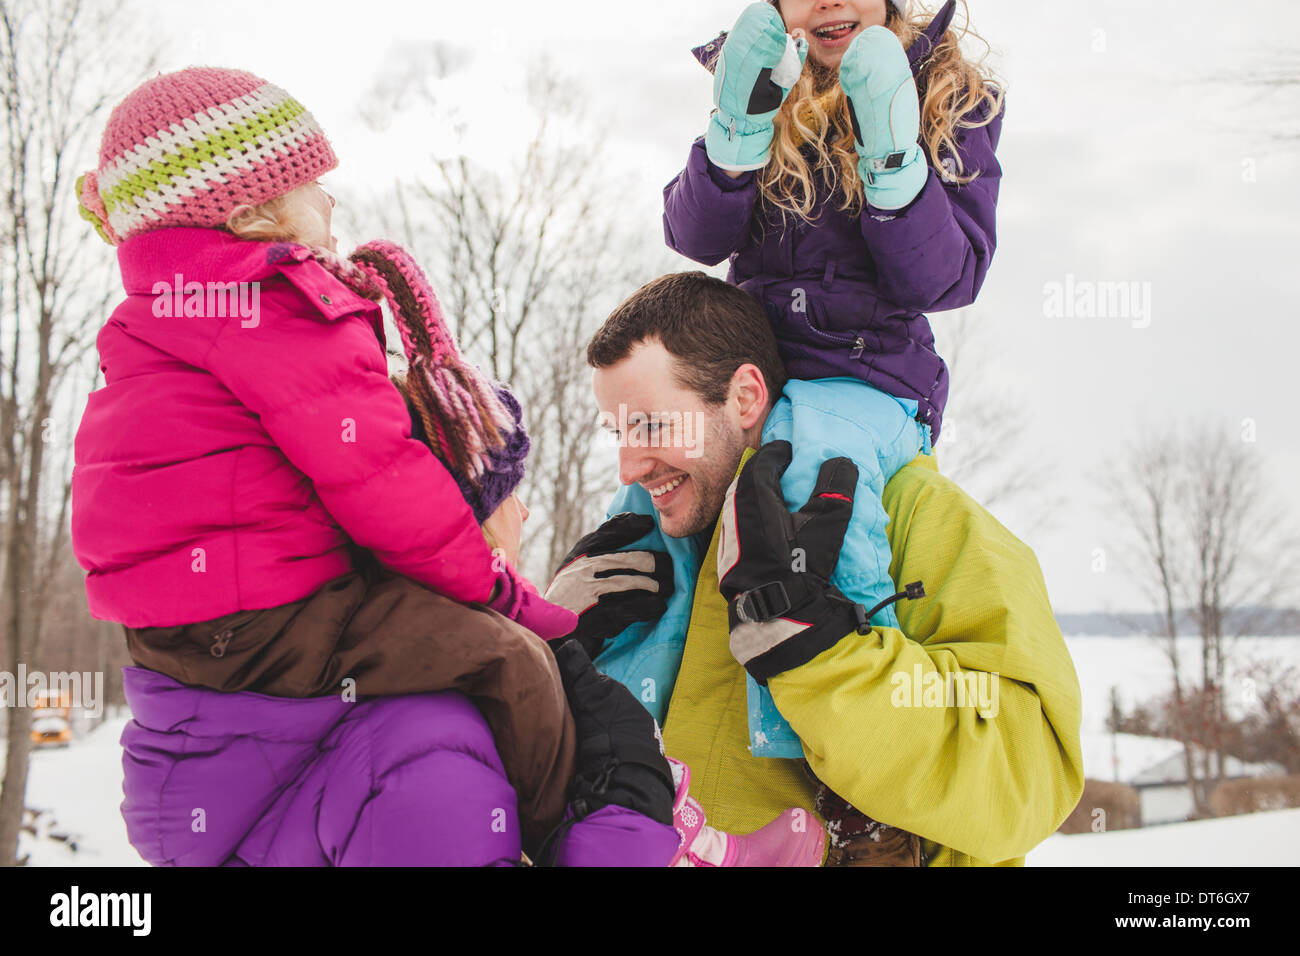 Mother and father carrying daughters in snow Stock Photo